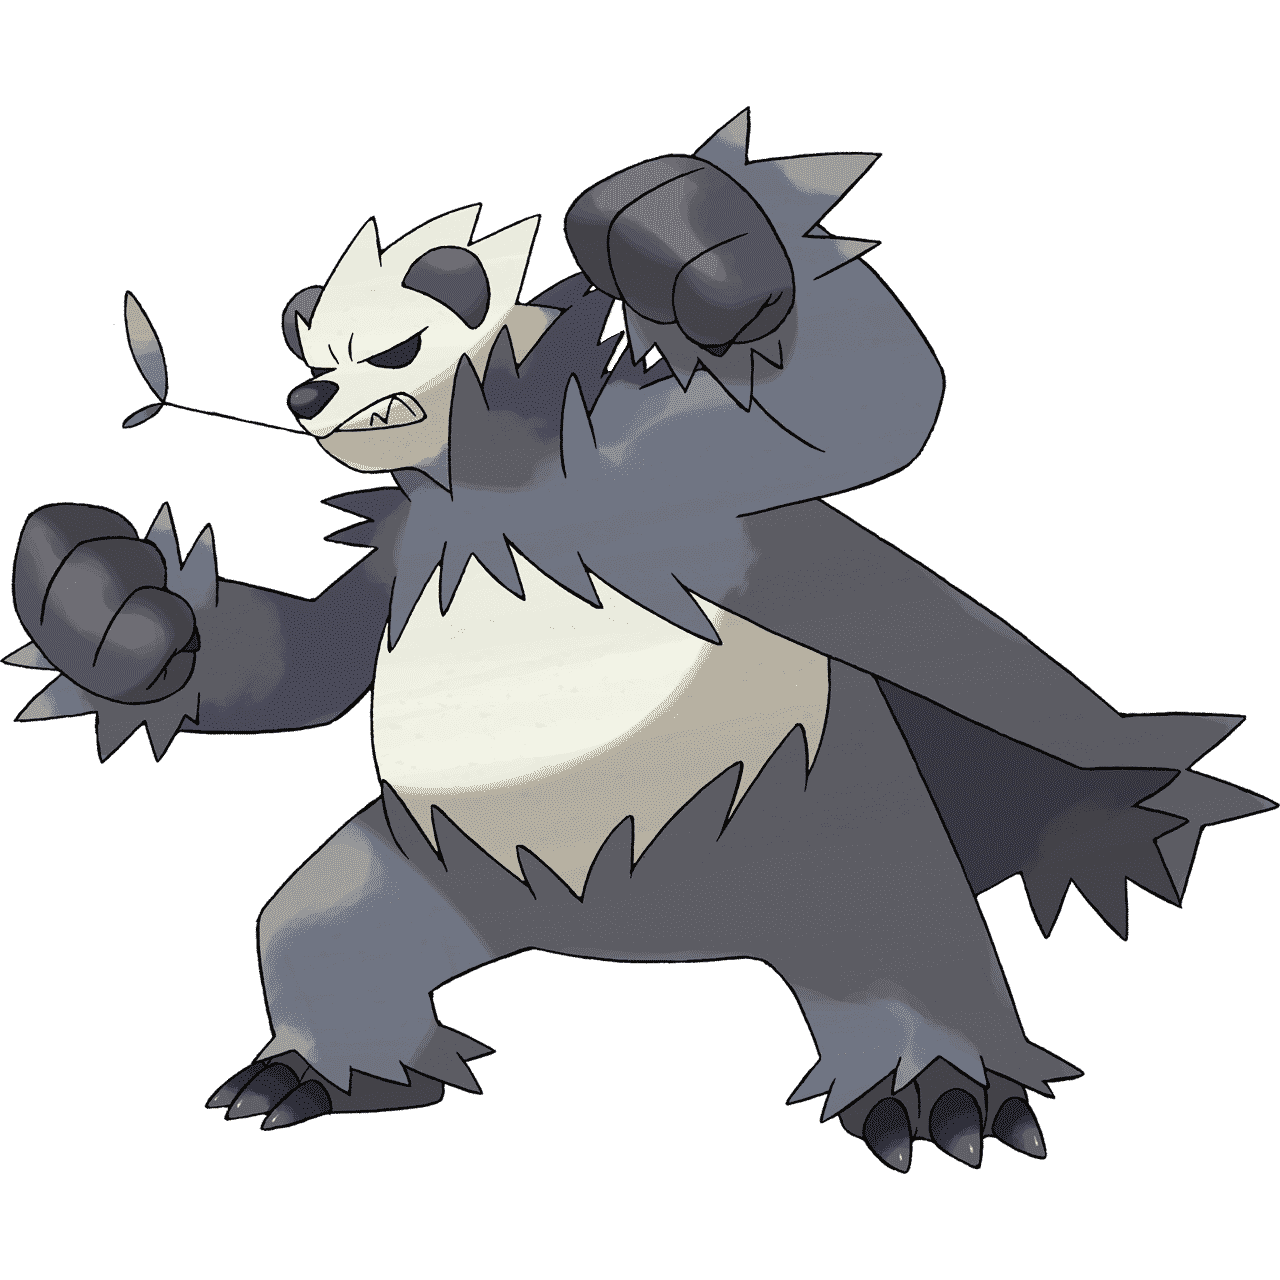 Pokémon Artwork Pandarbare